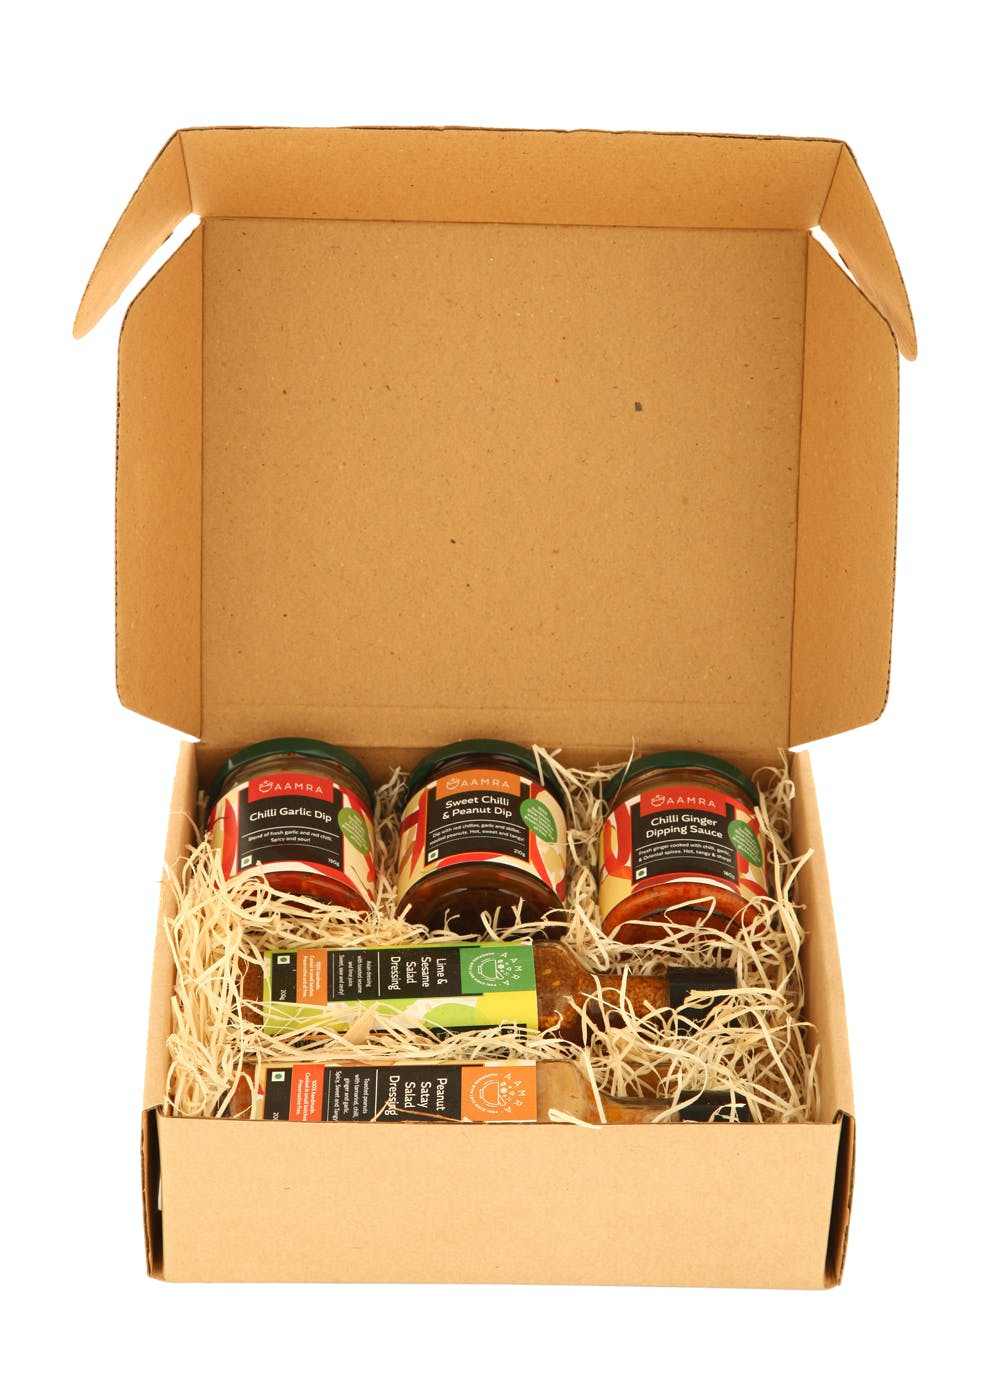 Asian Gift Pack- 5 Jars of Salad Dressings and Dips